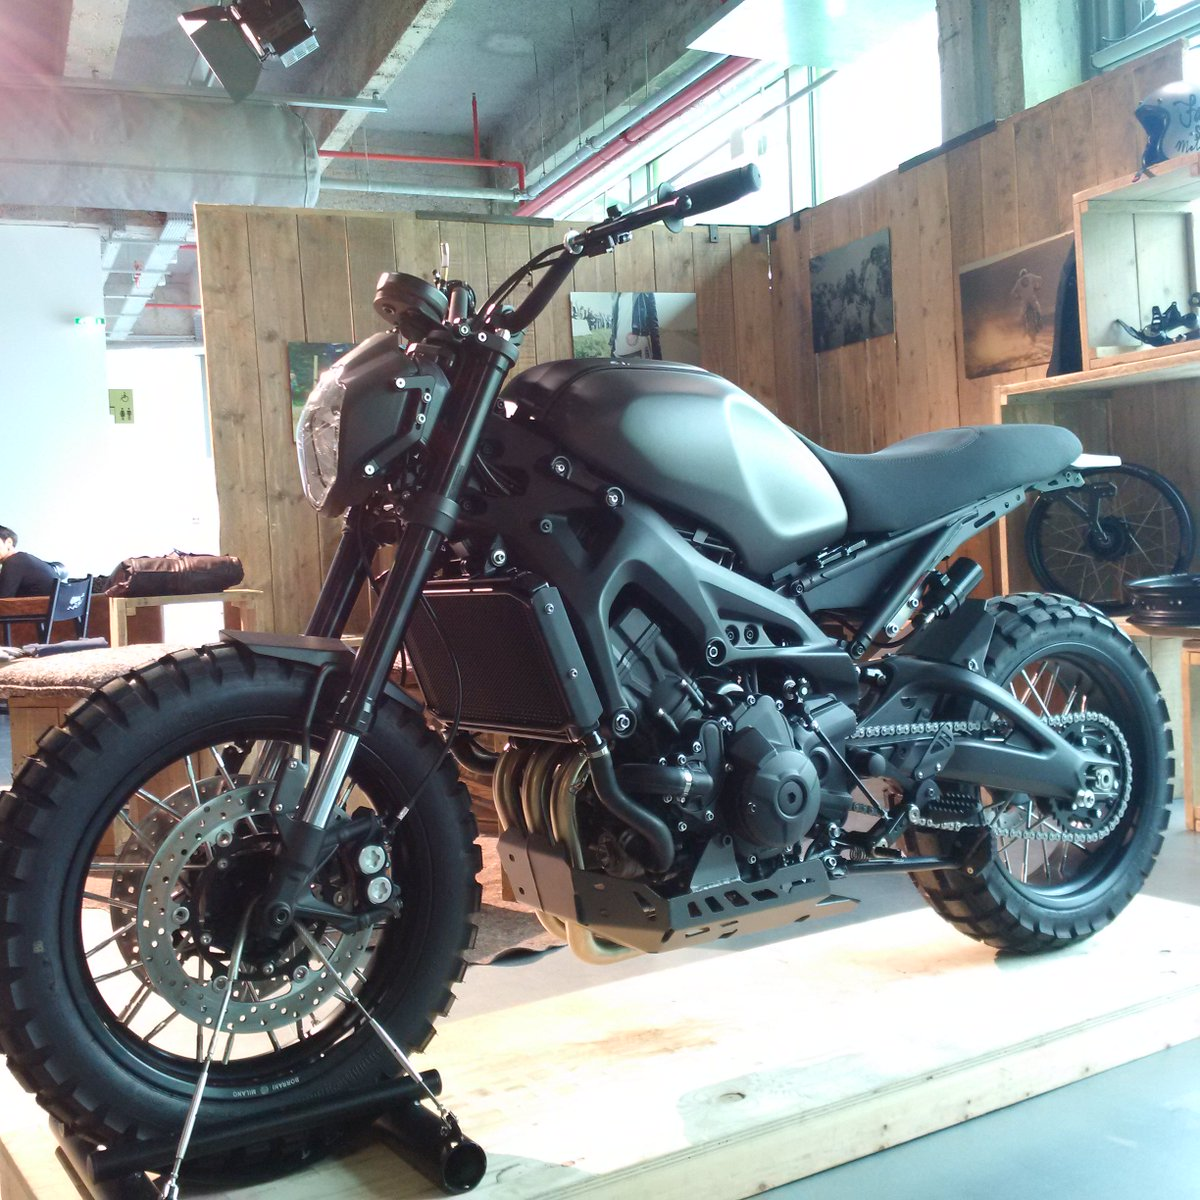 Yamaha Motor Europe On Twitter At BikeShedParis2016 The New Yardbuiltproject XSR 900 Monkeebeast By Wrenchmonkees BikeShedMC